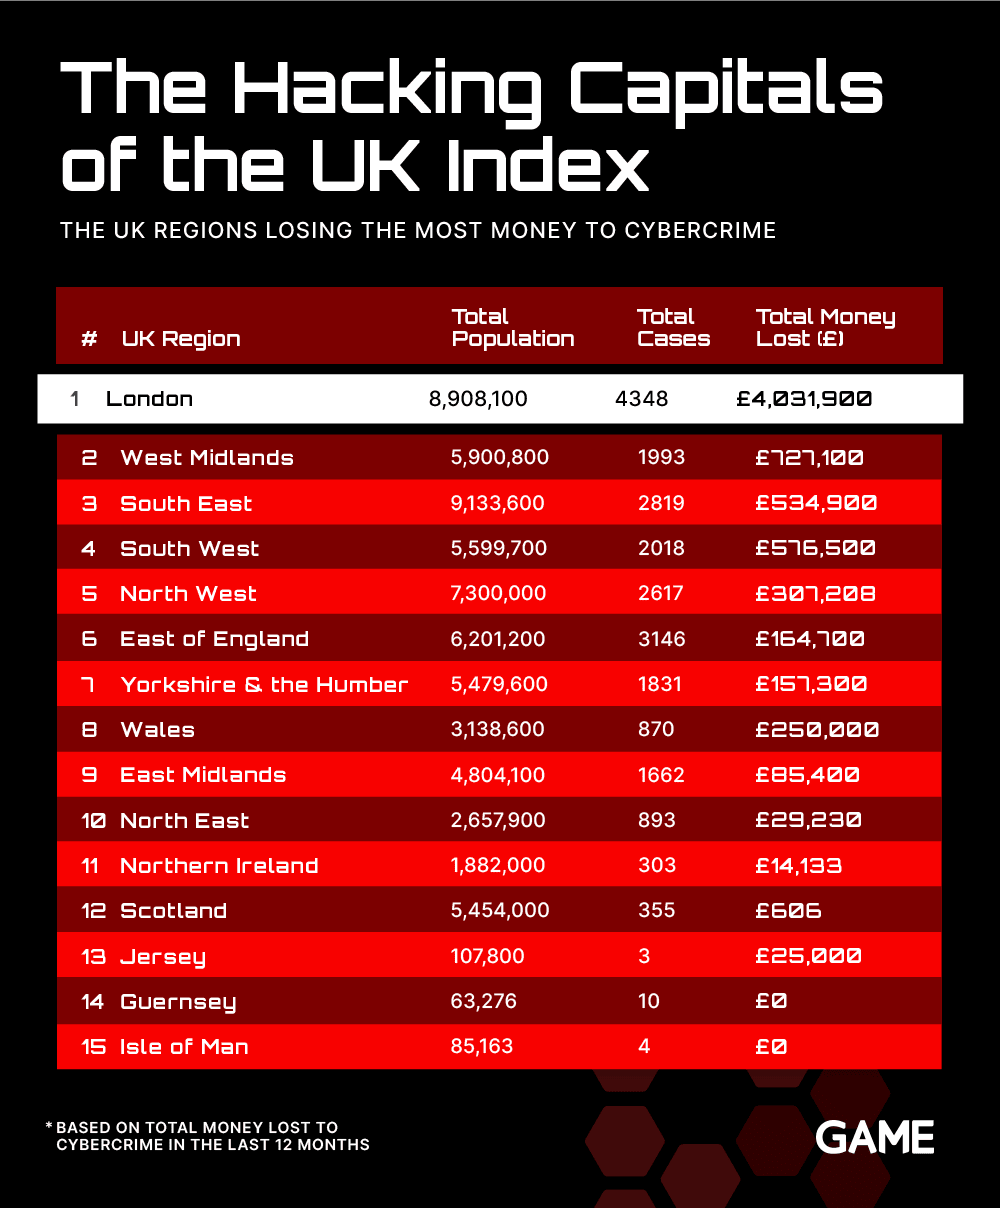 The hacking Capitals of the UK Index